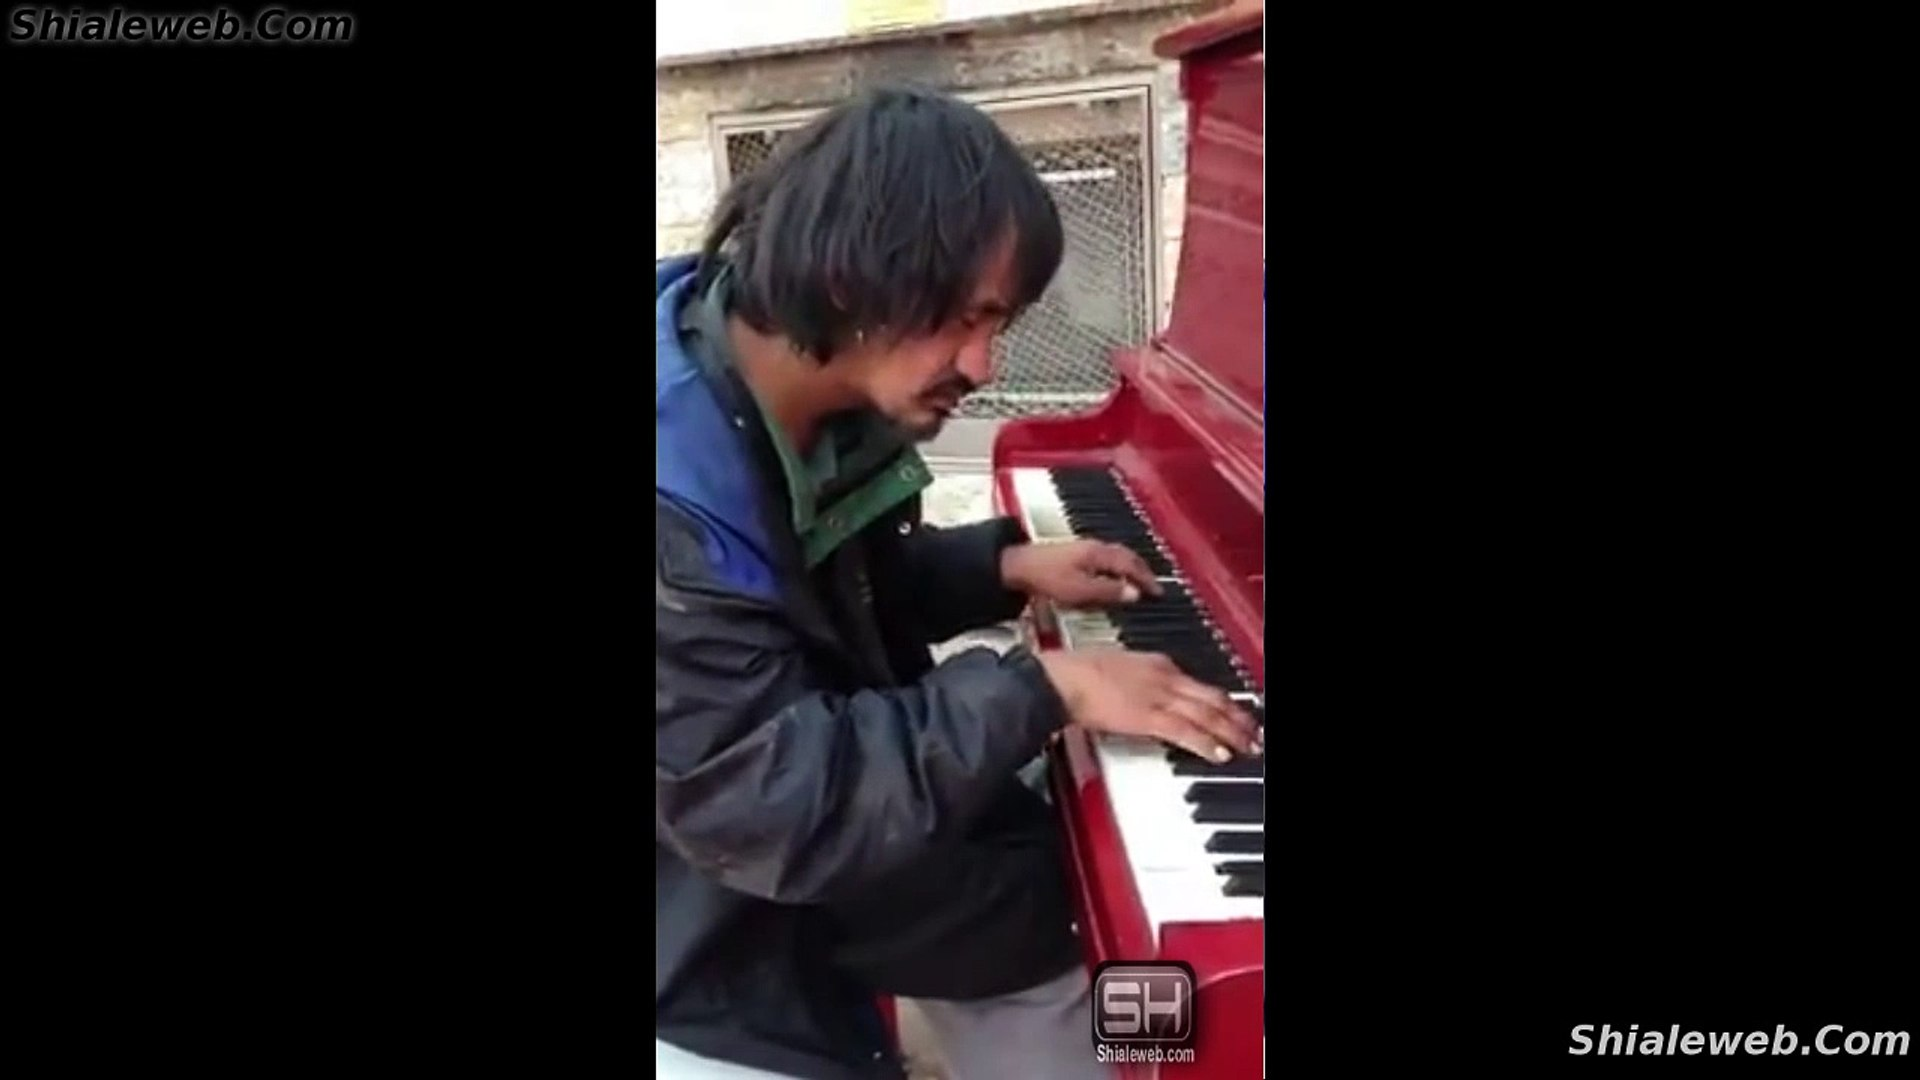 SORPRENDENTE VAGABUNDO HOMELESS ARTISTA USA UN PIANO PARA INTERPRETAR UNA CANCION CON HERMOSA MELODI